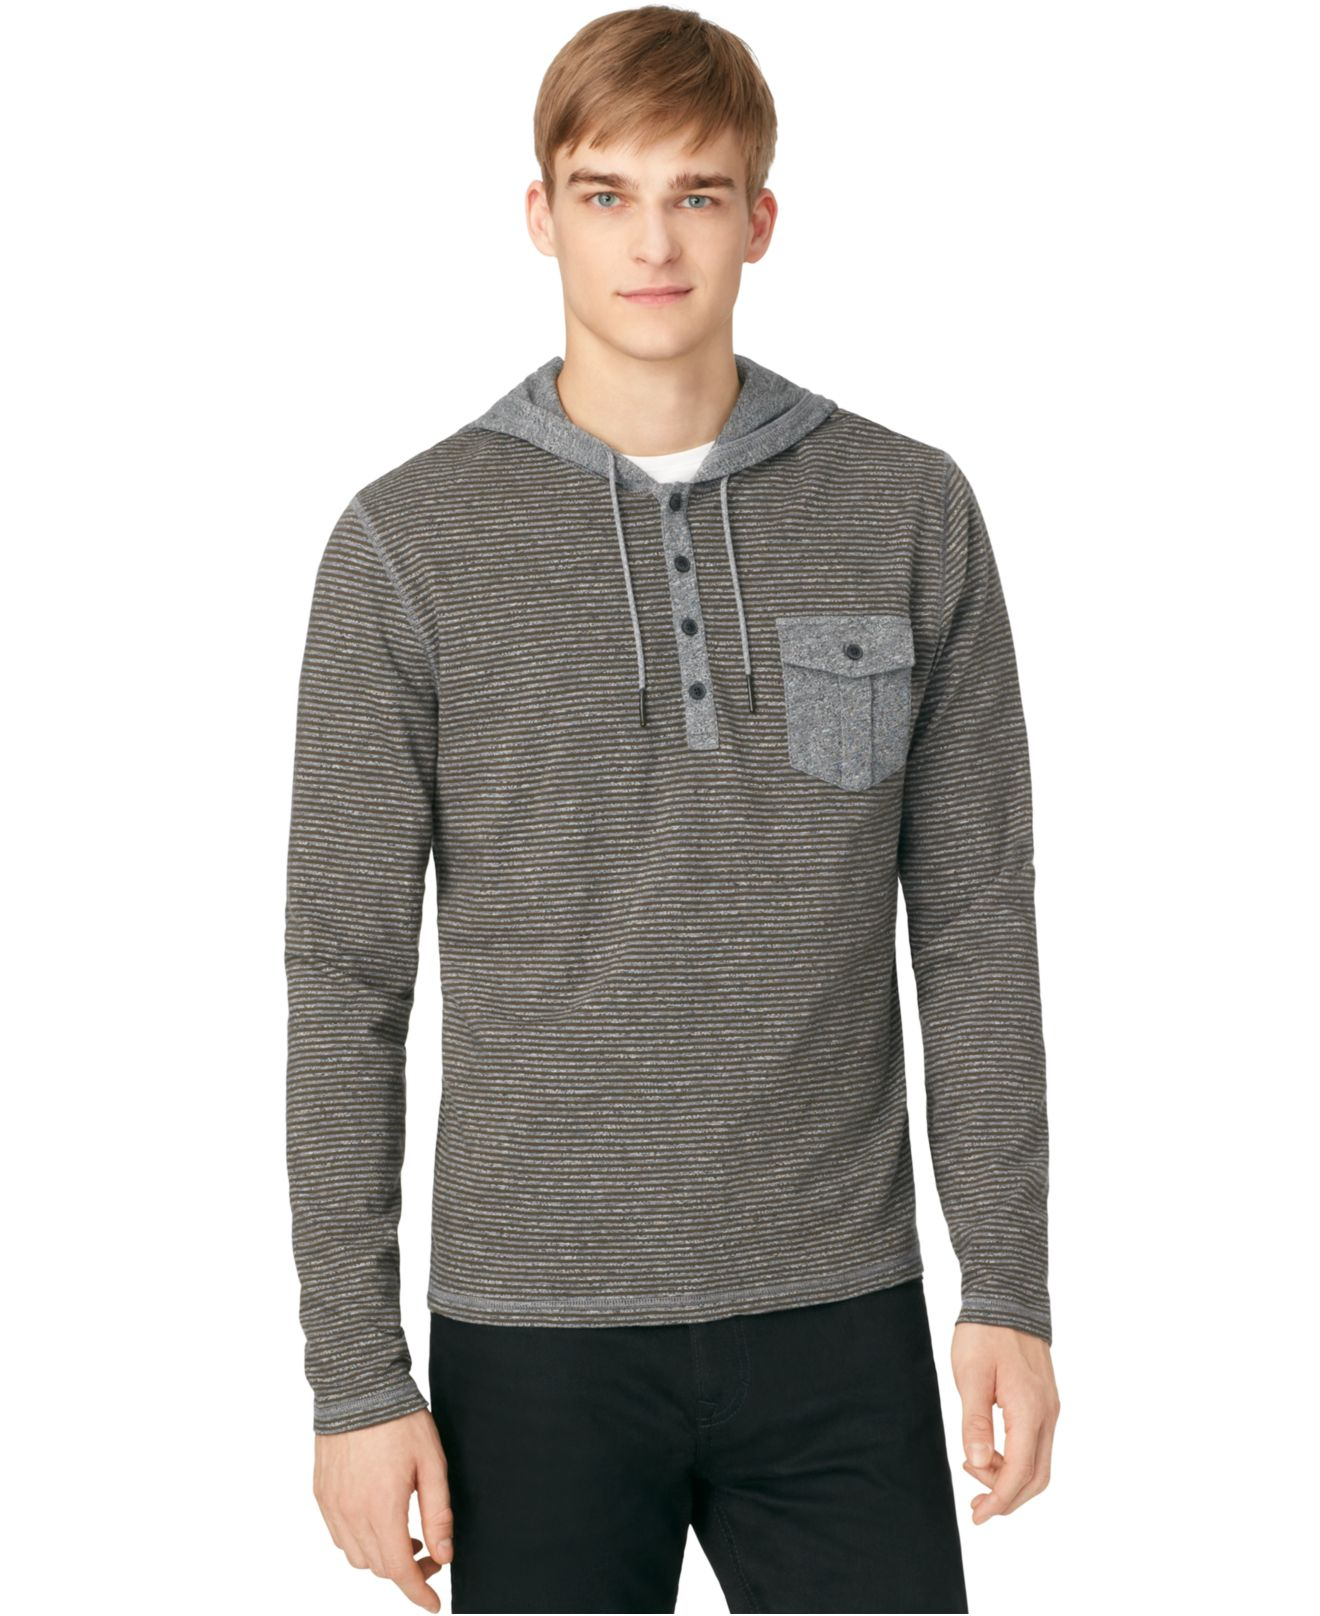 calvin klein jeans striped hoodie in gray for men lyst. Black Bedroom Furniture Sets. Home Design Ideas